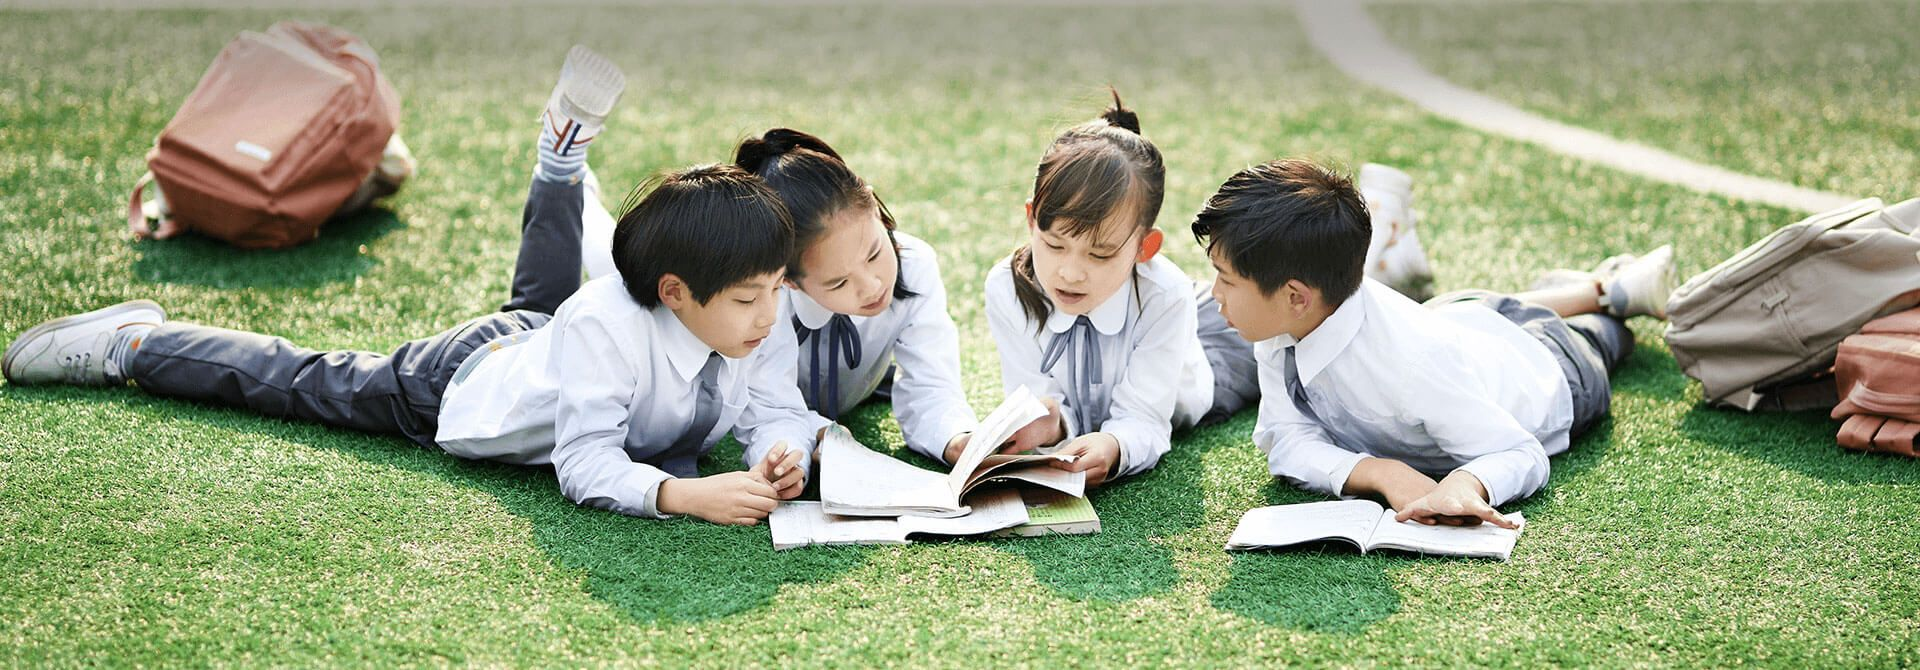 Access here alternative investment news about Gic Leads $200M Funding In Chinese Edtech Platform Aixuexi